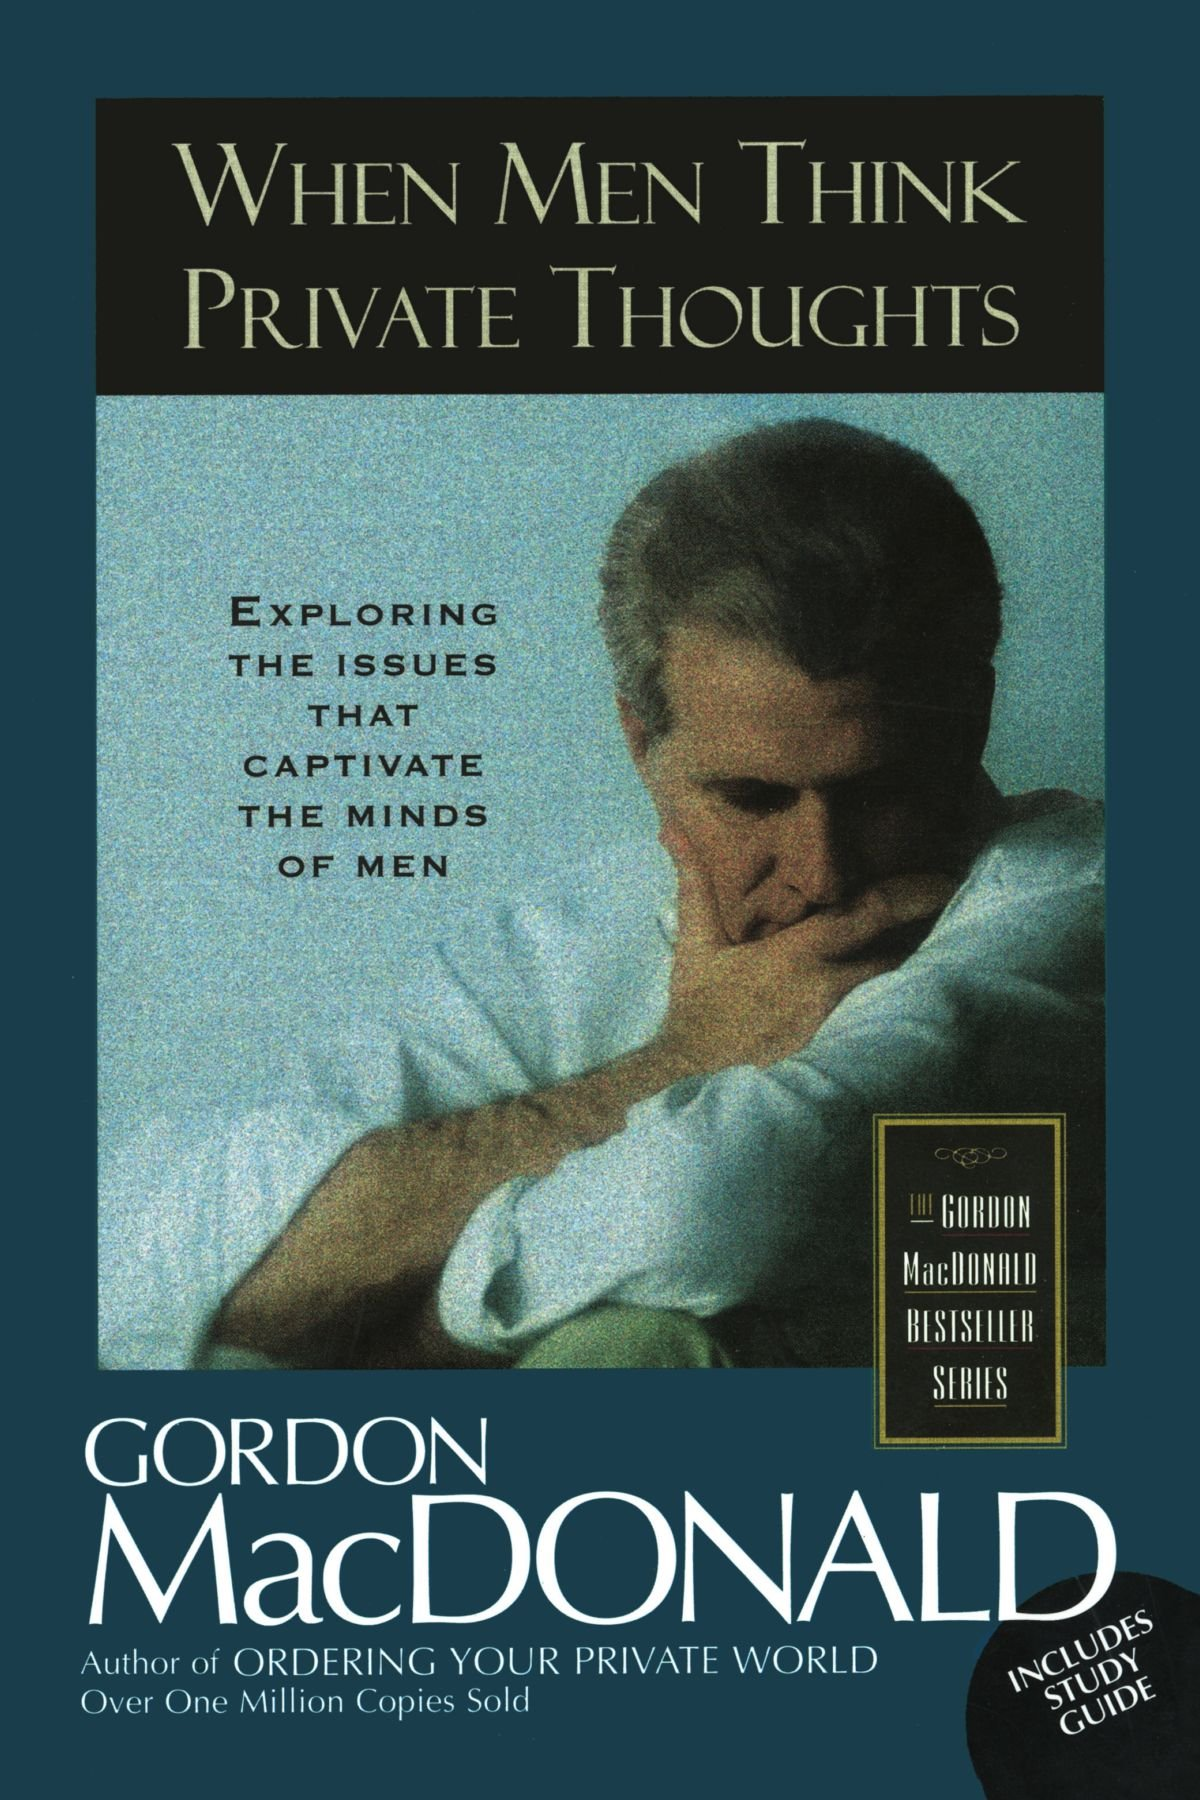 When Men Think Private Thoughts: Exploring the Issues that Captivate the Minds of Men (Gordon MacDonald Bestseller Series)